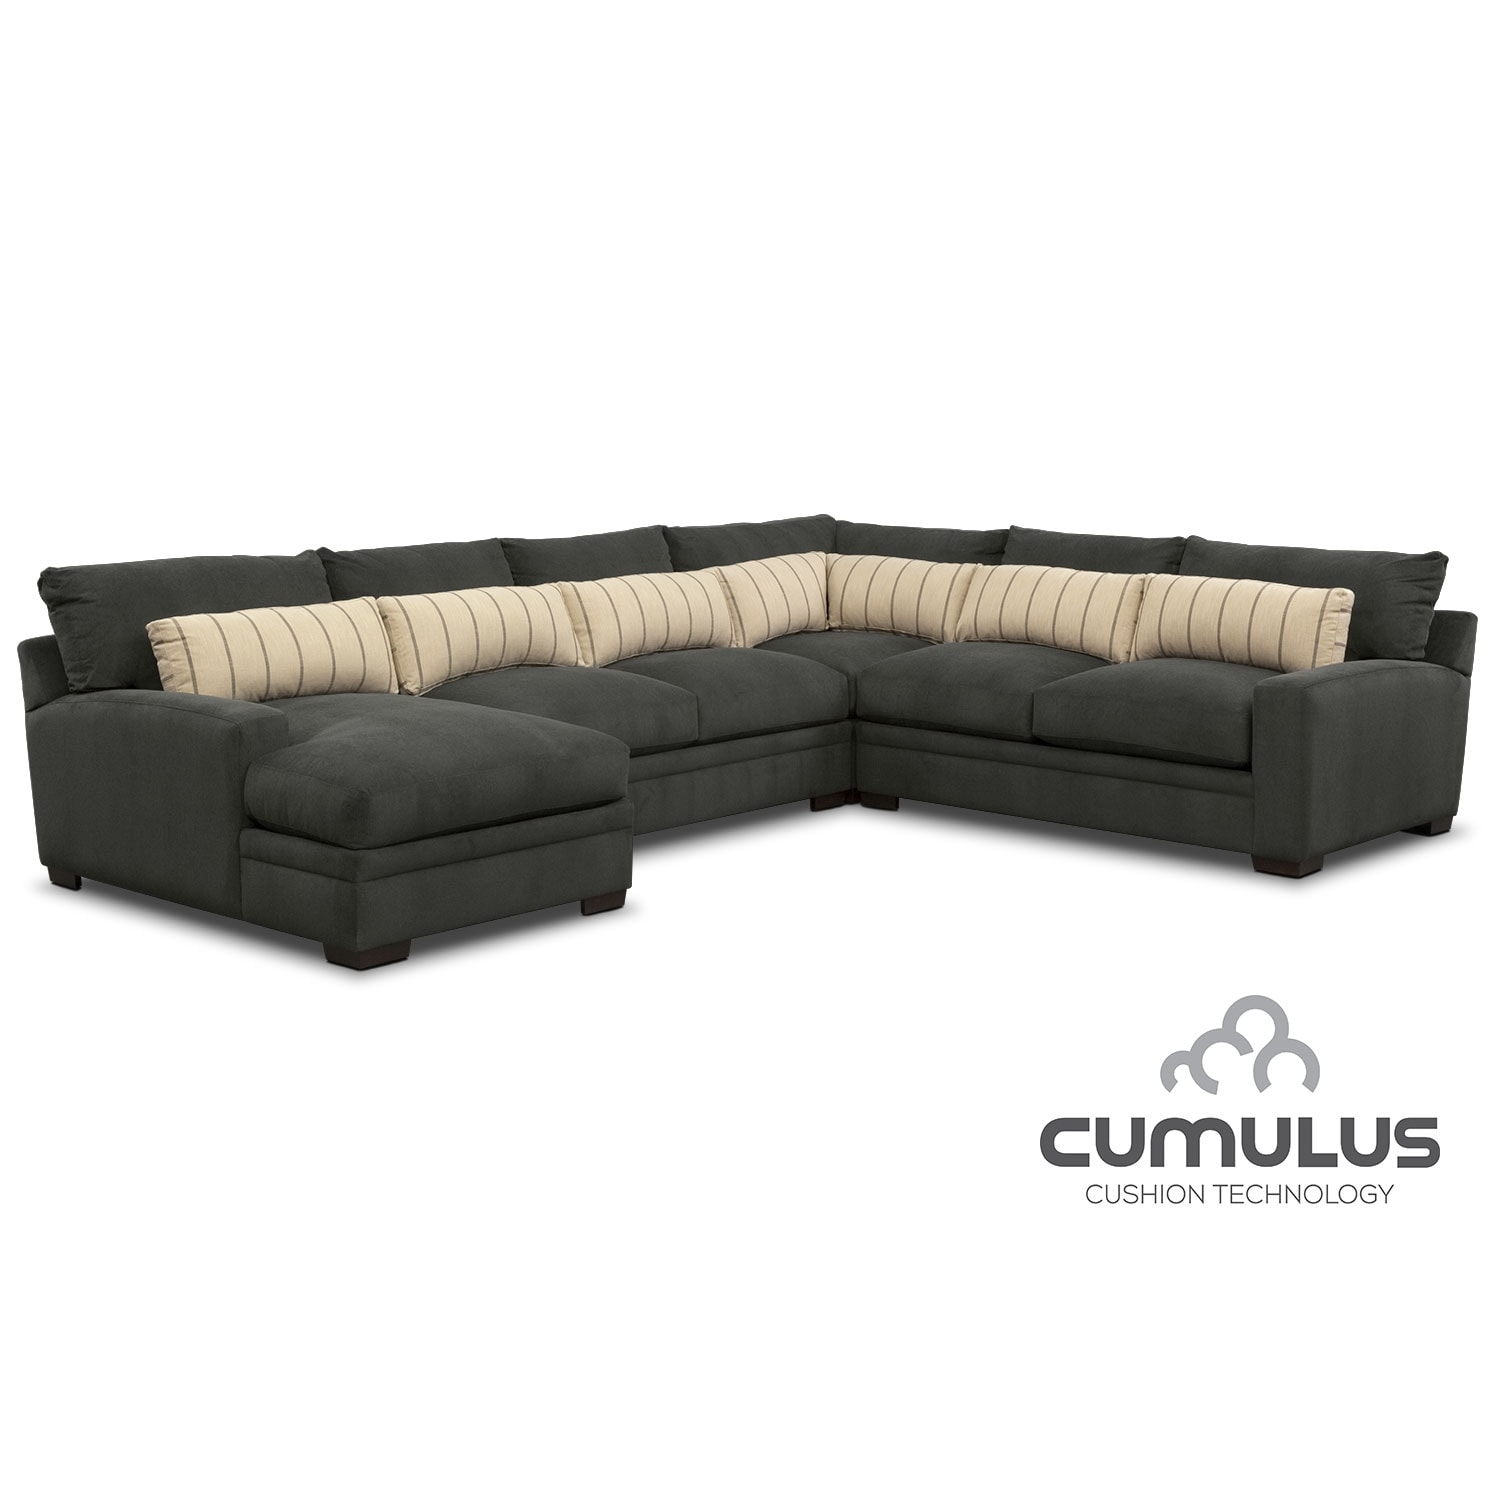 Living Room Furniture Made In The Usa Kroehler Furniture Made In Usa Value City Furniture